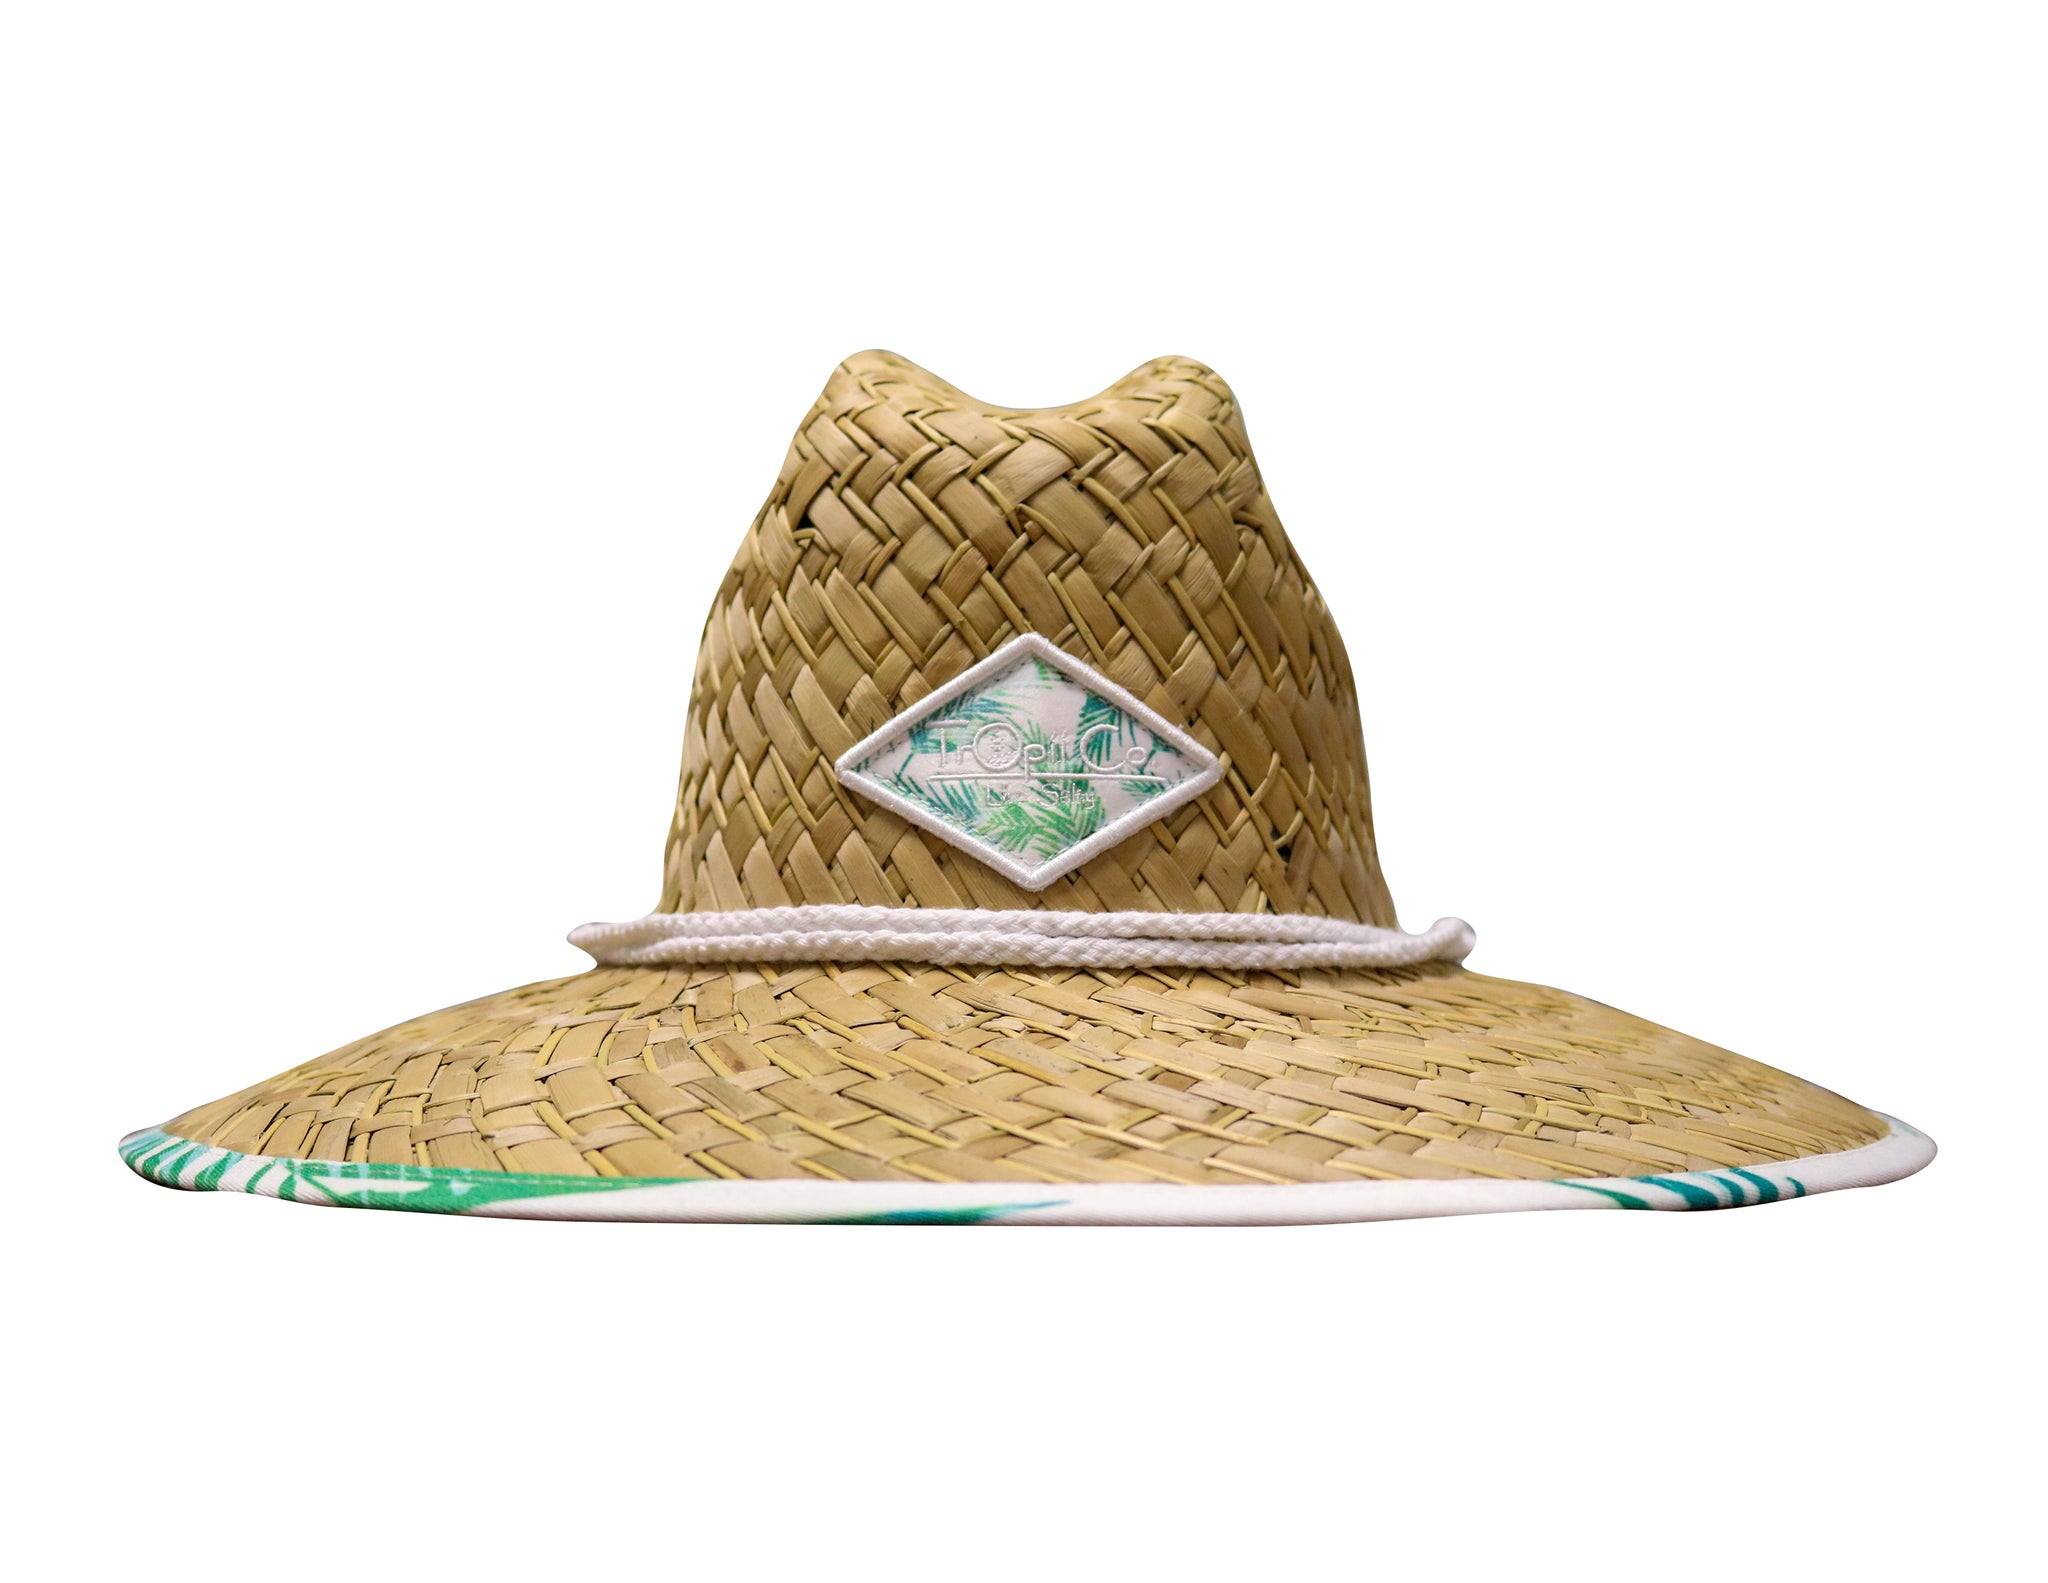 Bimini - tropii co. Cool straw hat with American flag design under the brim